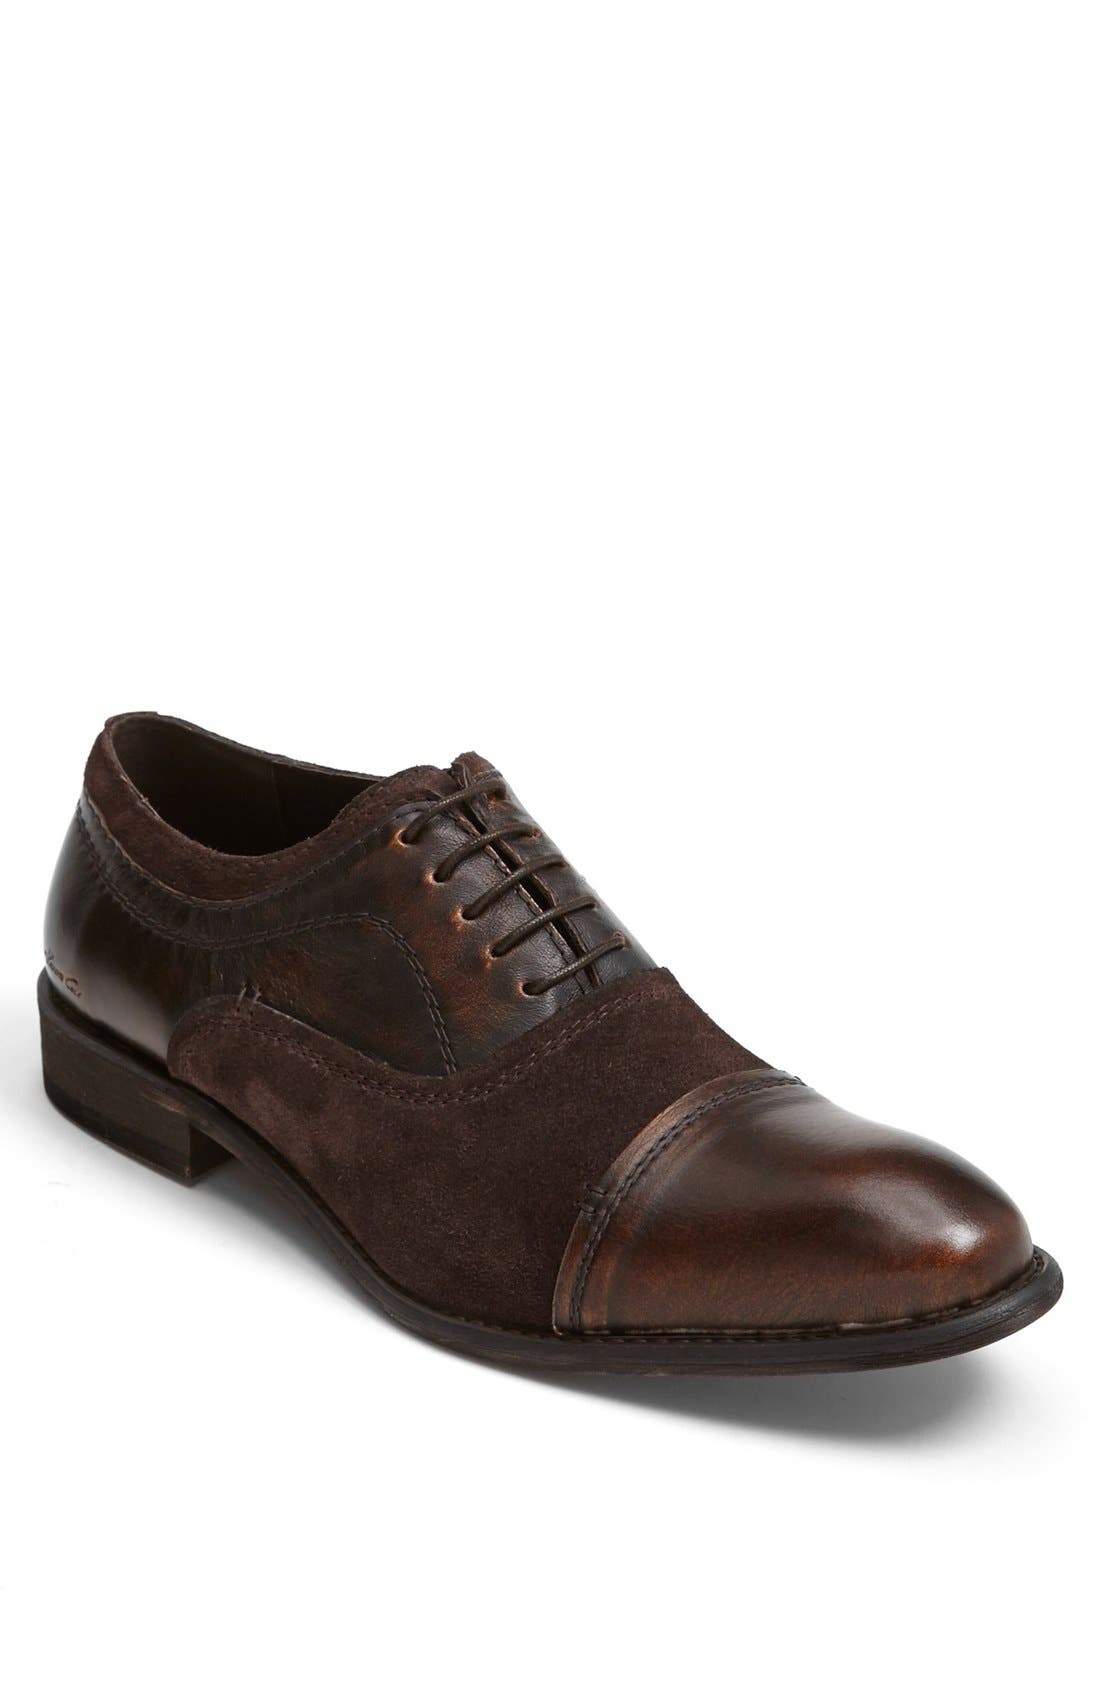 Alternate Image 1 Selected - Kenneth Cole New York 'Wishing Star' Cap Toe Oxford